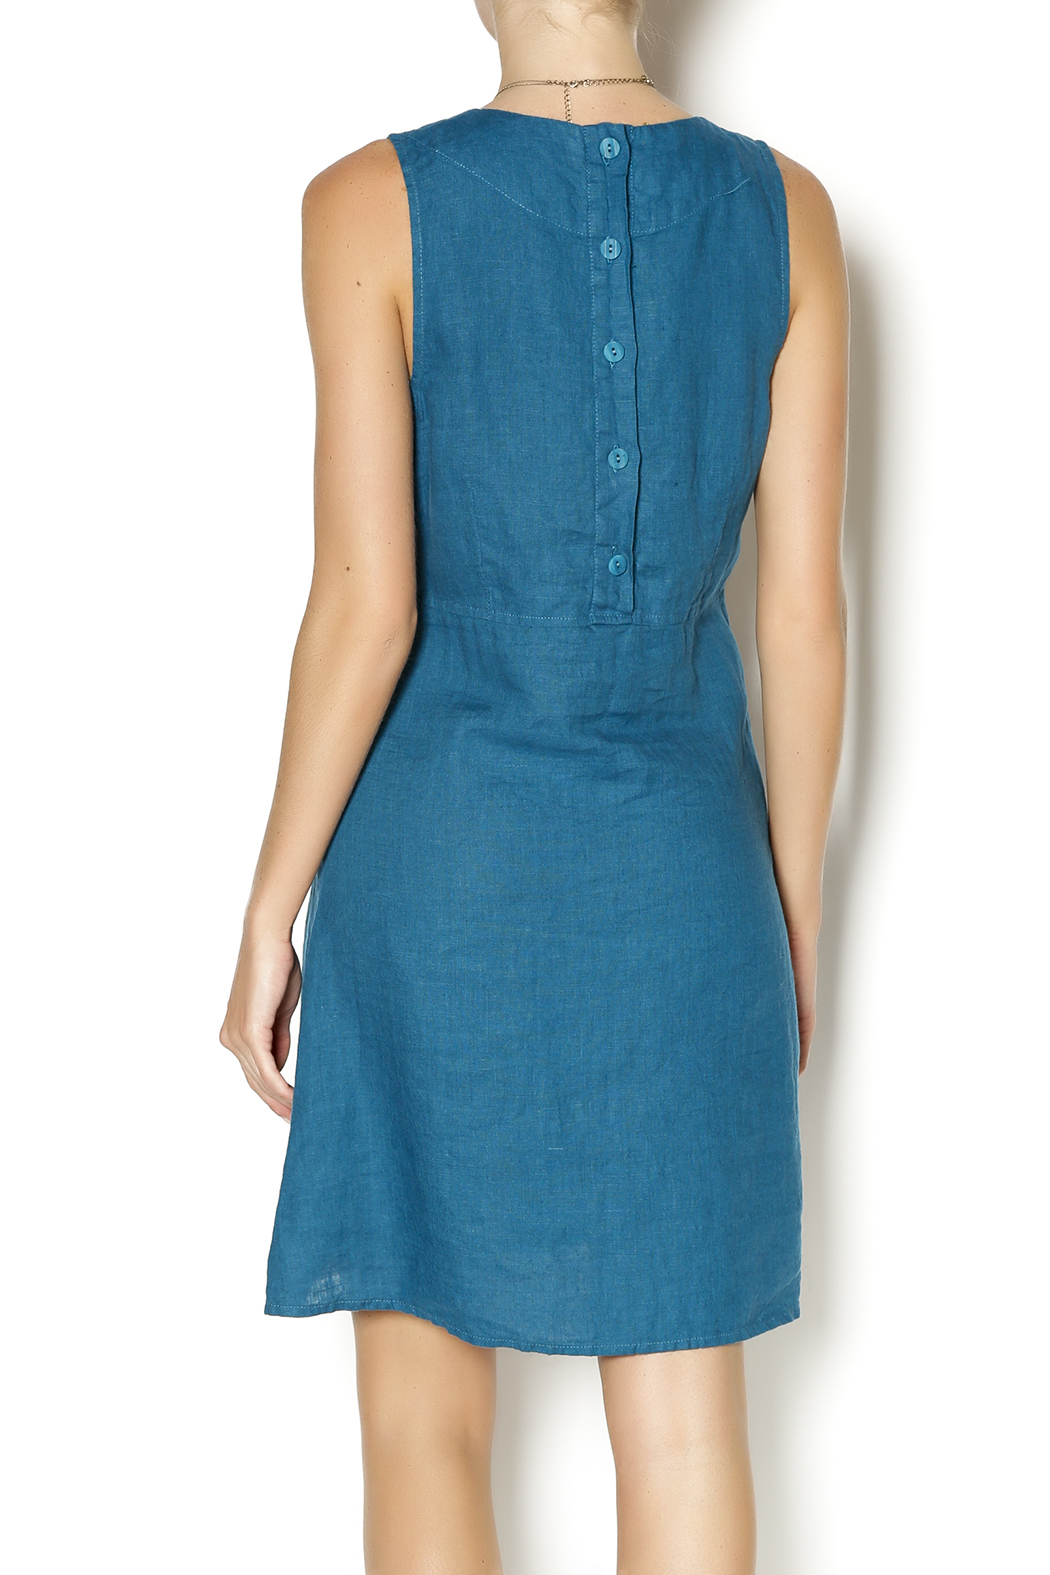 Flax Linen Shift Dress From Ohio By Youniques Boutique